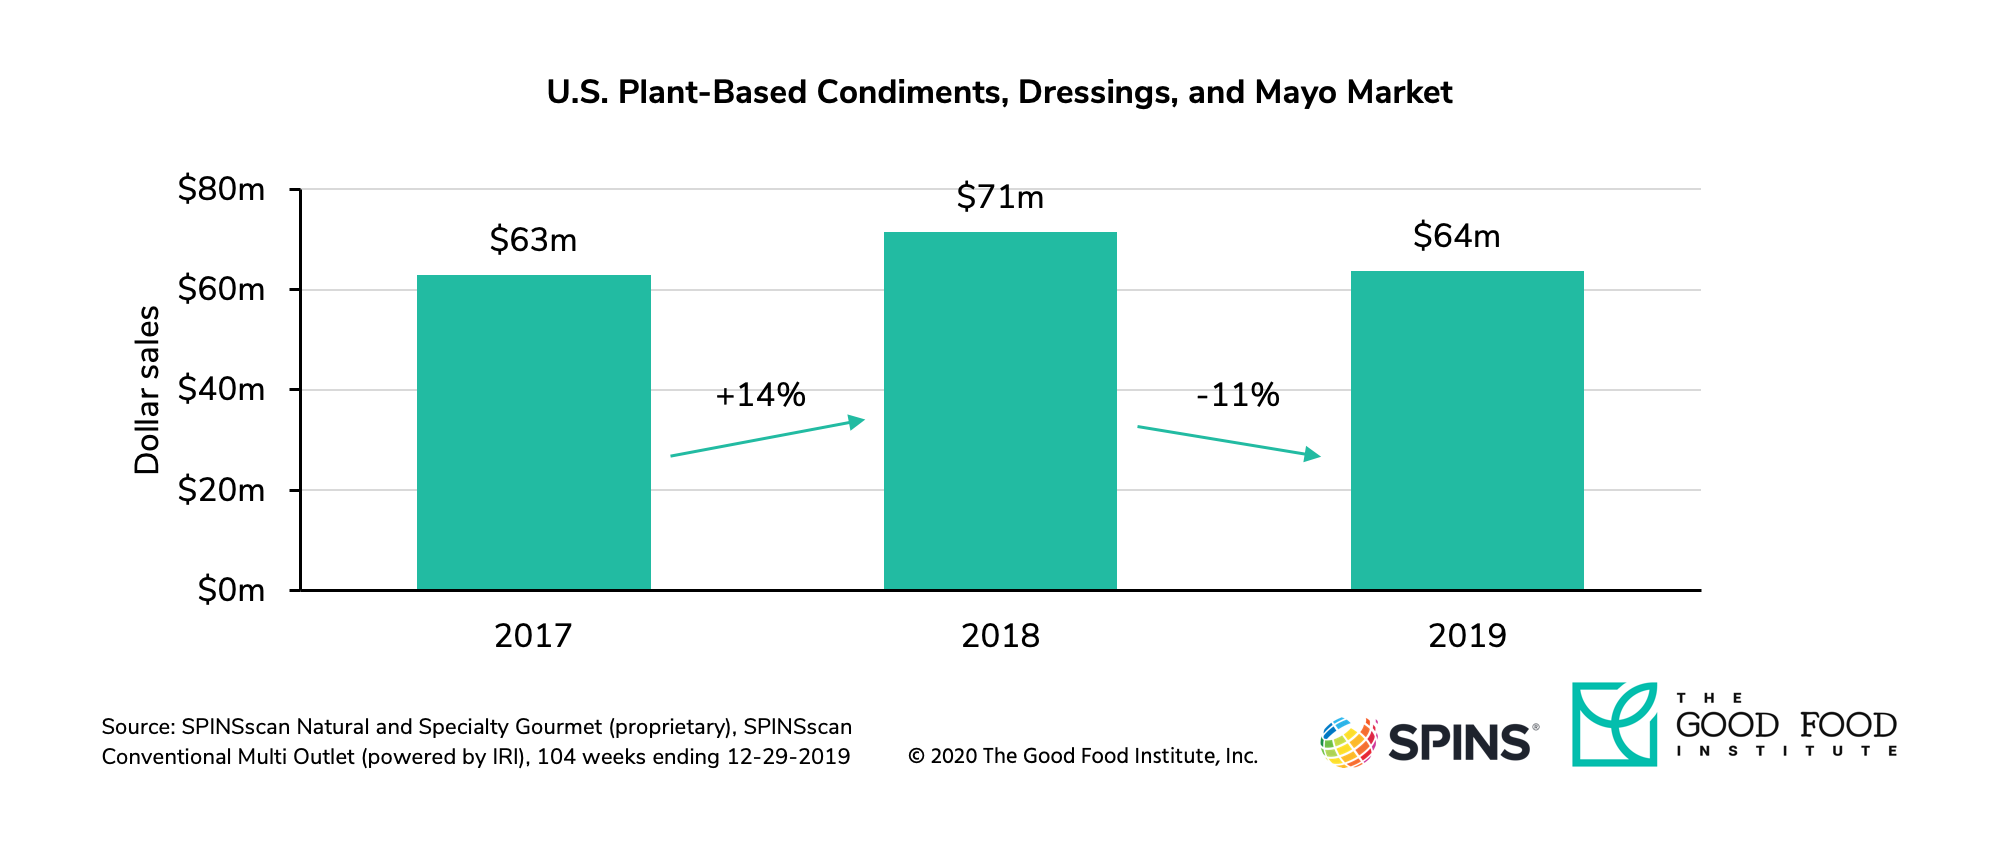 U.S. retail sales of plant-based condiments, dressings, and mayo declined 11 percent in 2019.